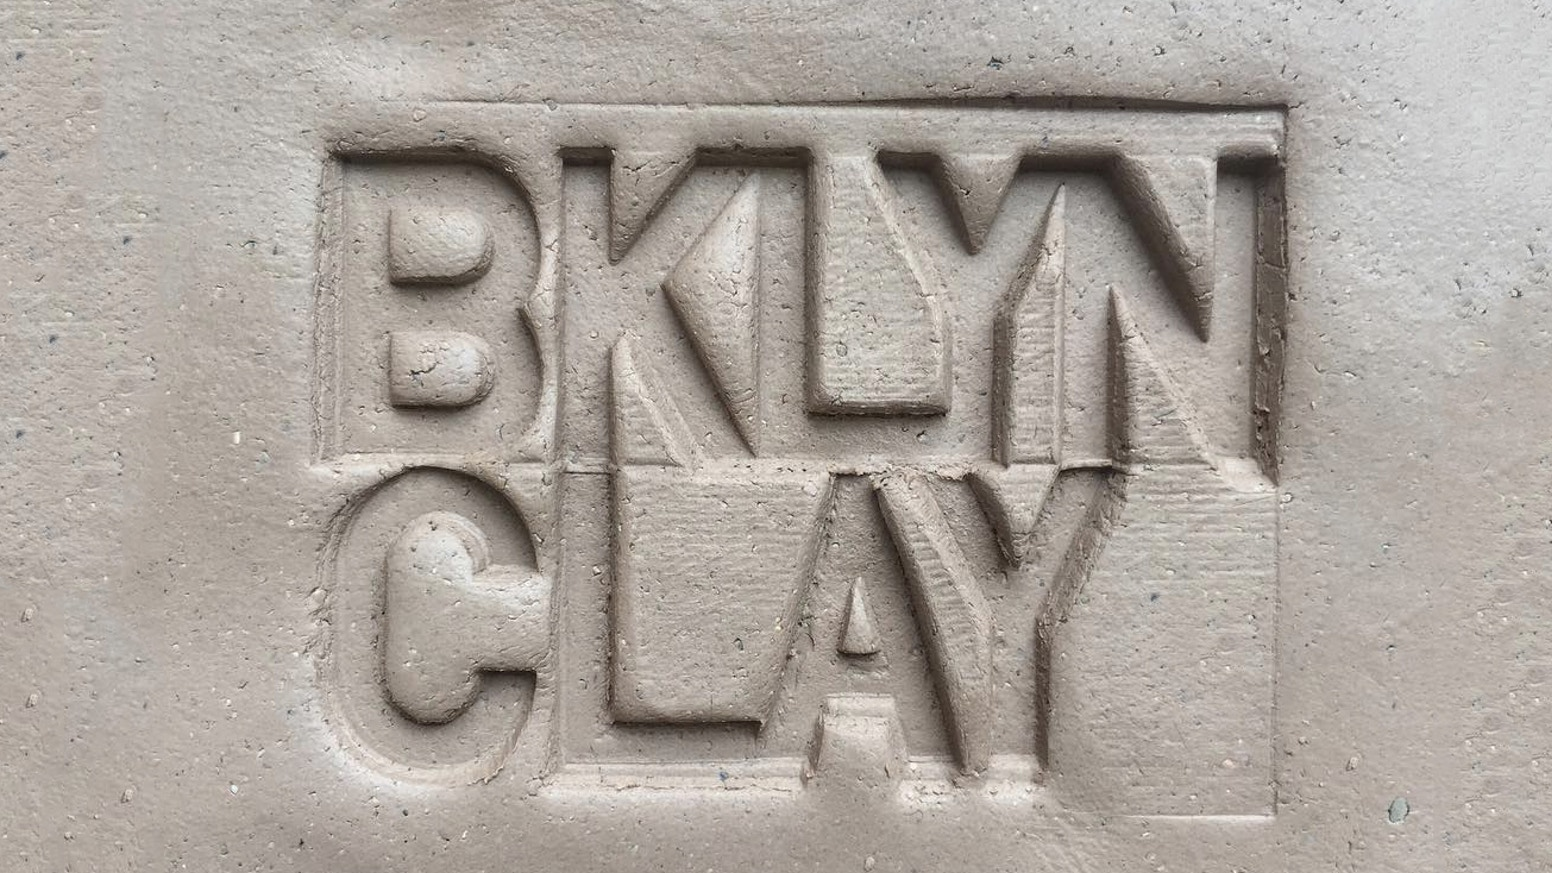 Bklyn clay give us gas by bklyn clay kickstarter a new community art space that opened october 2016 featuring a gas kiln 24 fandeluxe Choice Image